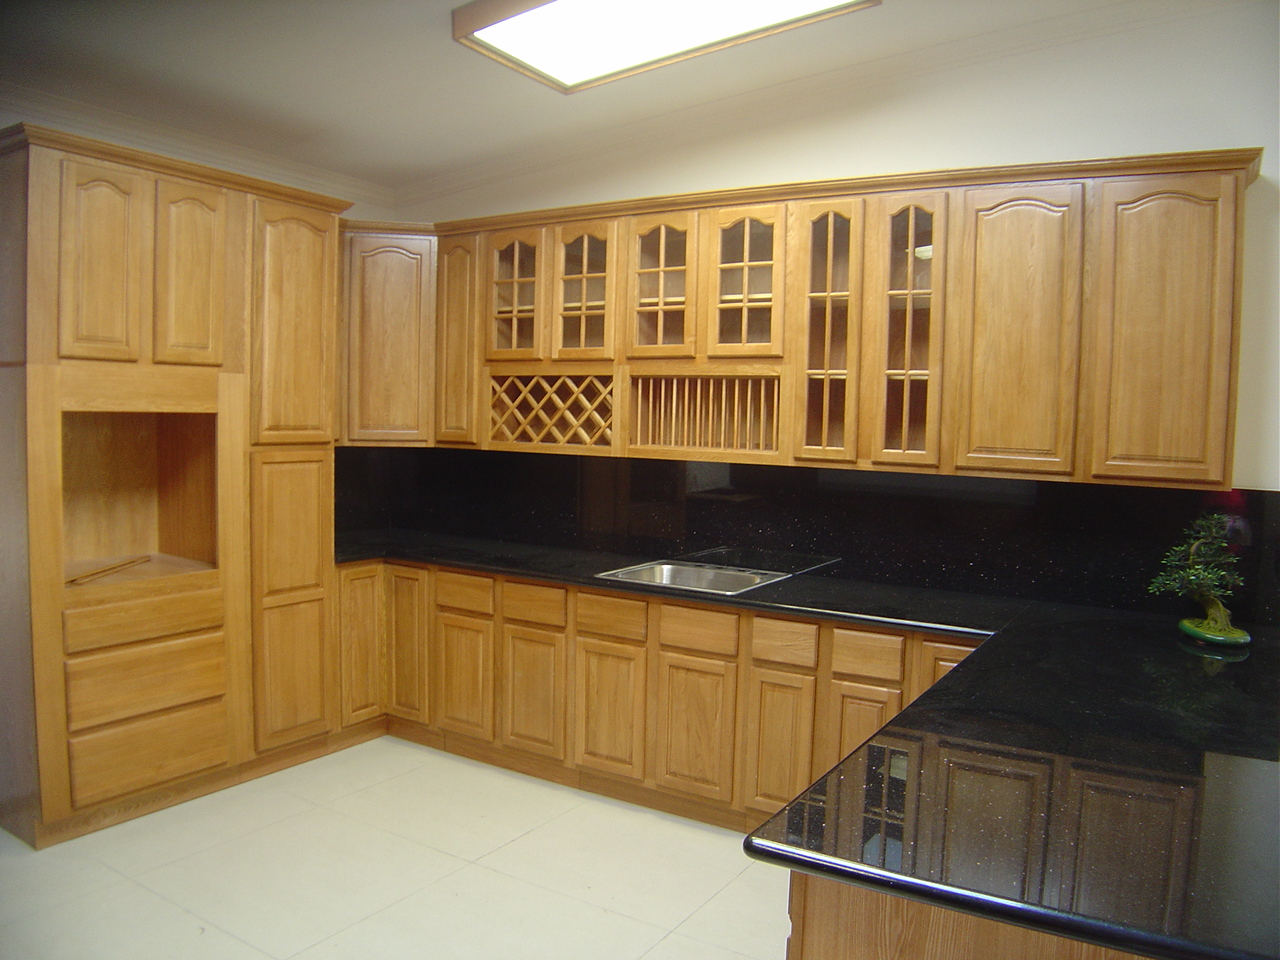 Kitchen Design Ideas Oak Cabinets Oak Kitchen Cabinets For Your Interior Kitchen Minimalist